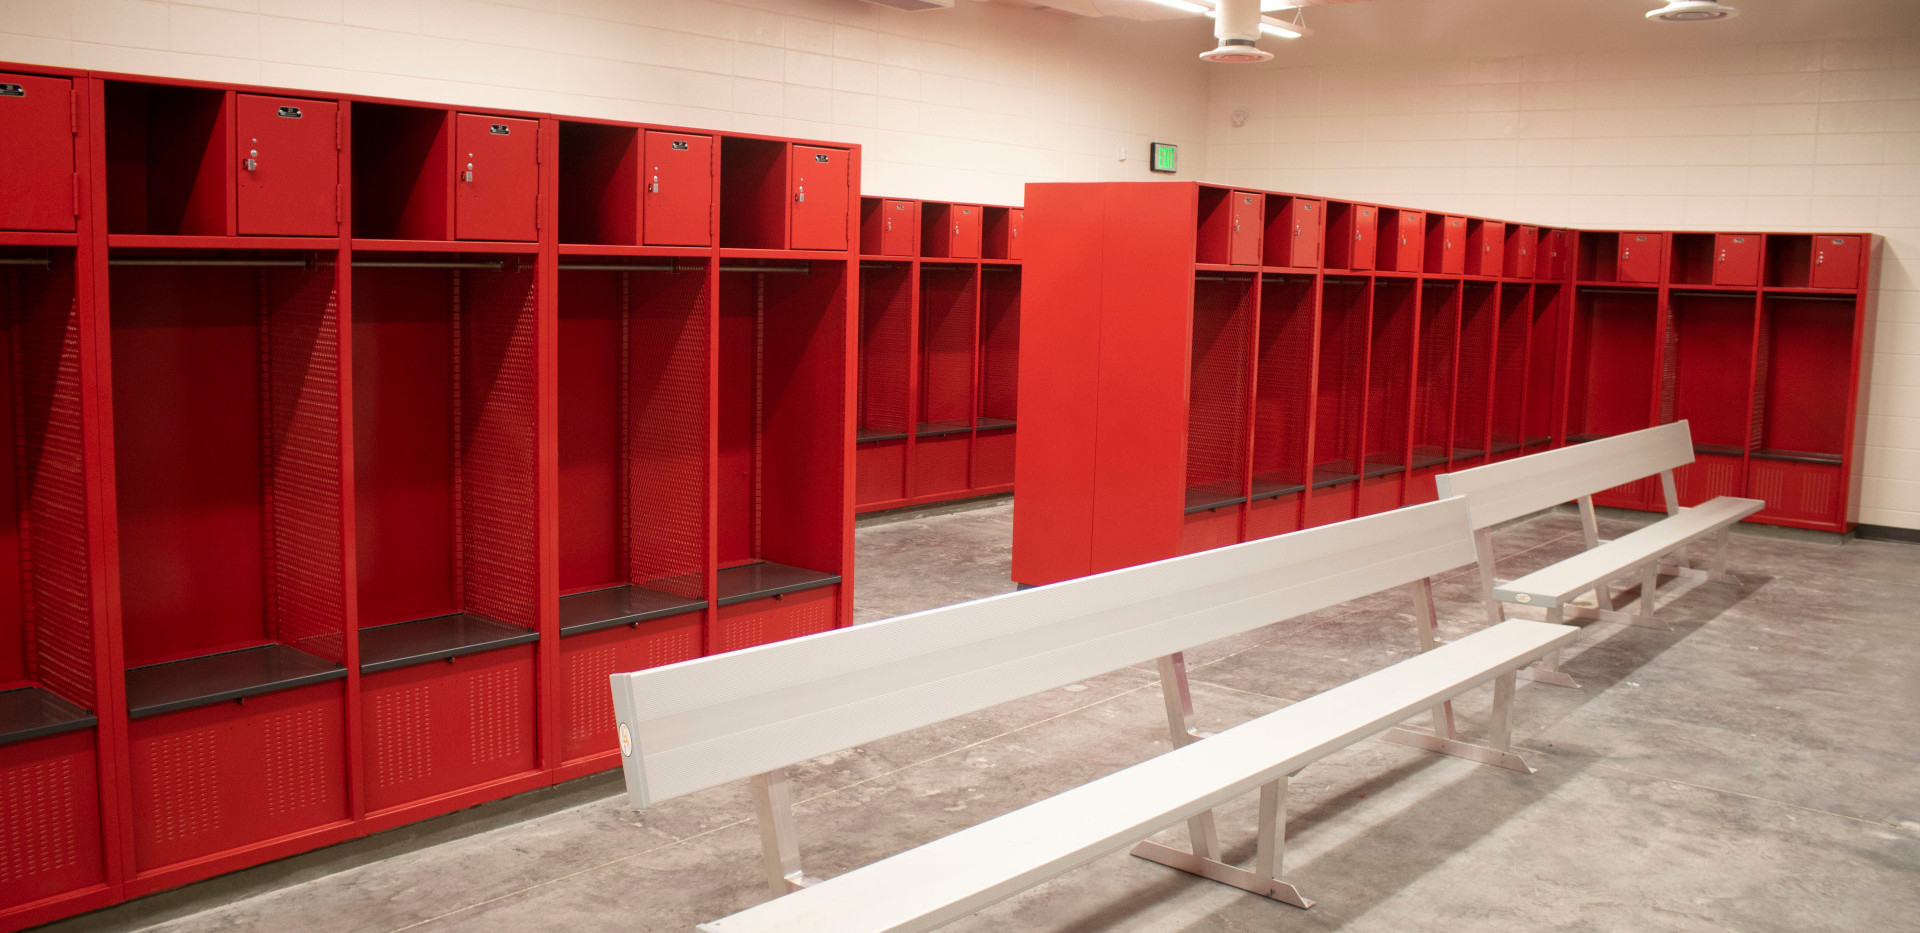 locker room.jfif